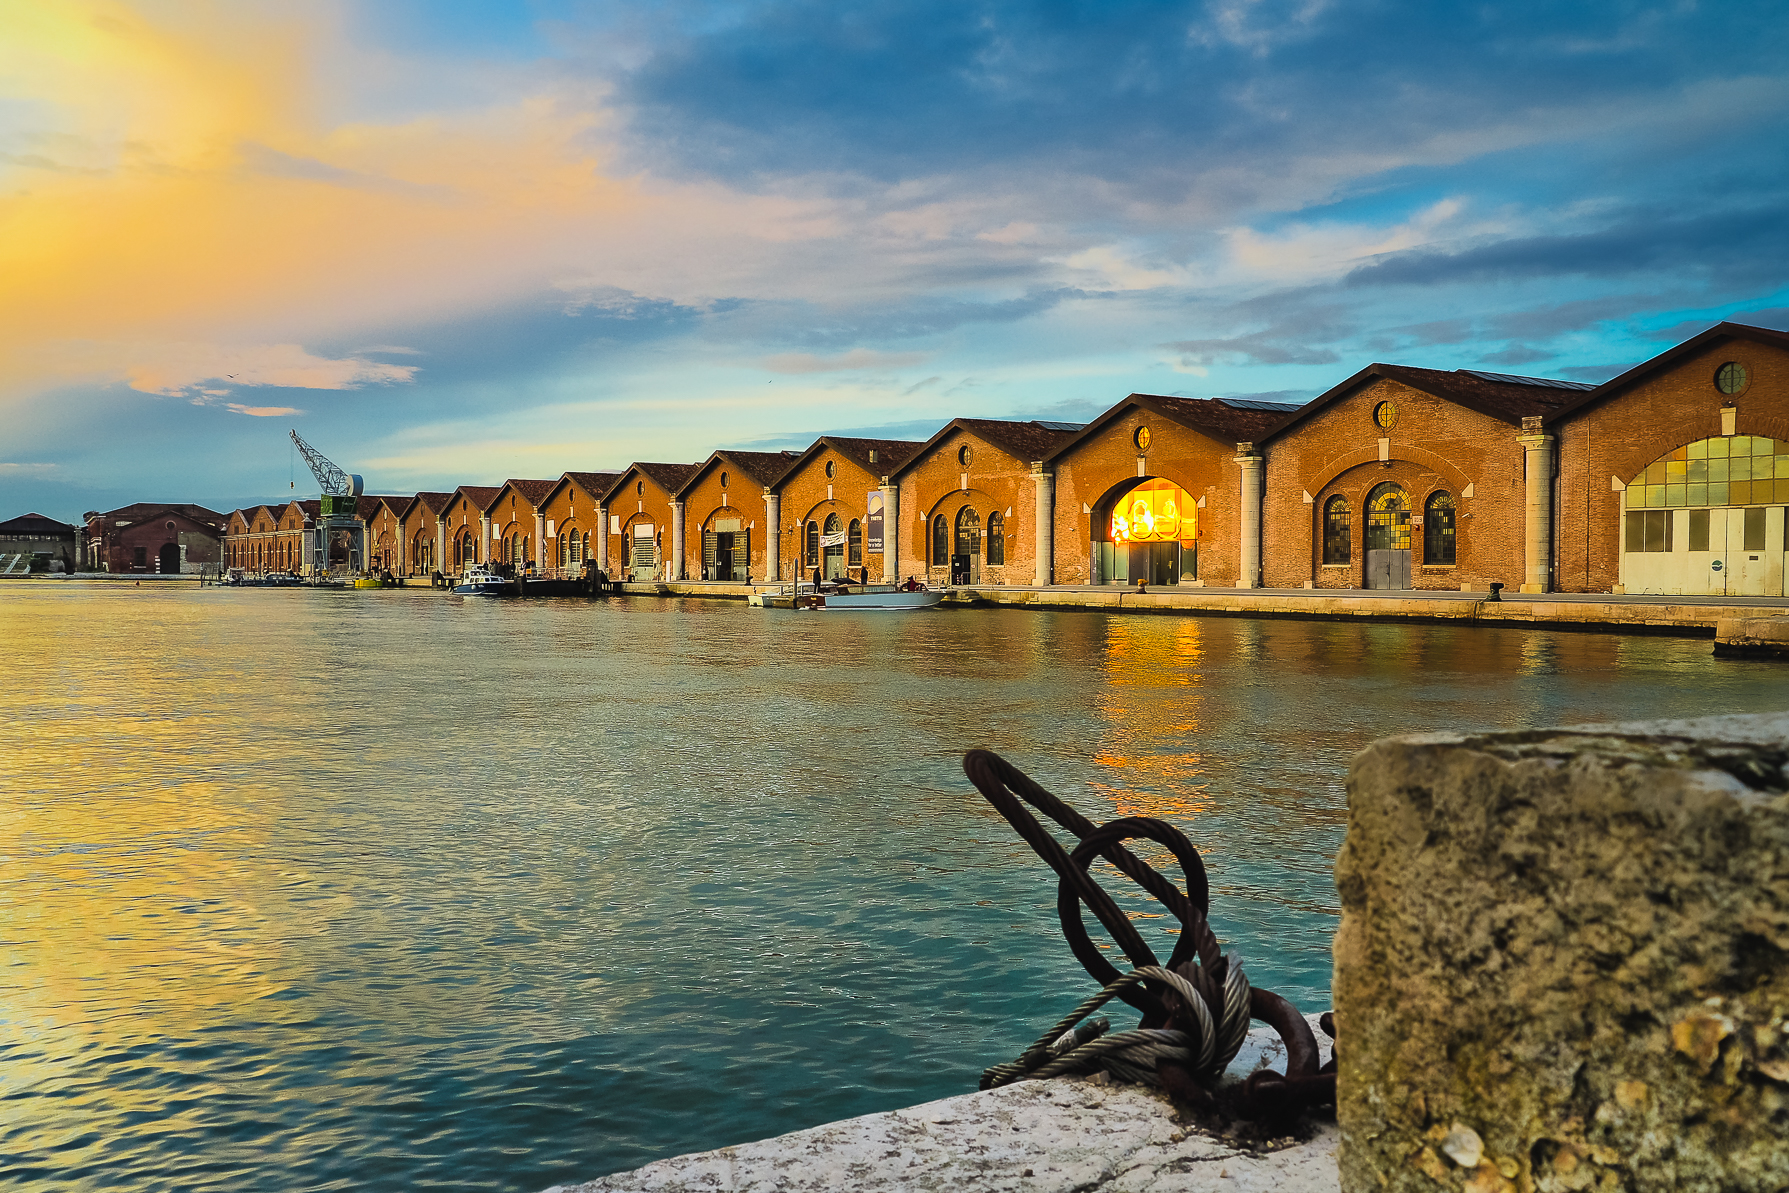 Arsenale, Venice. (credits: grobery - Flickr)